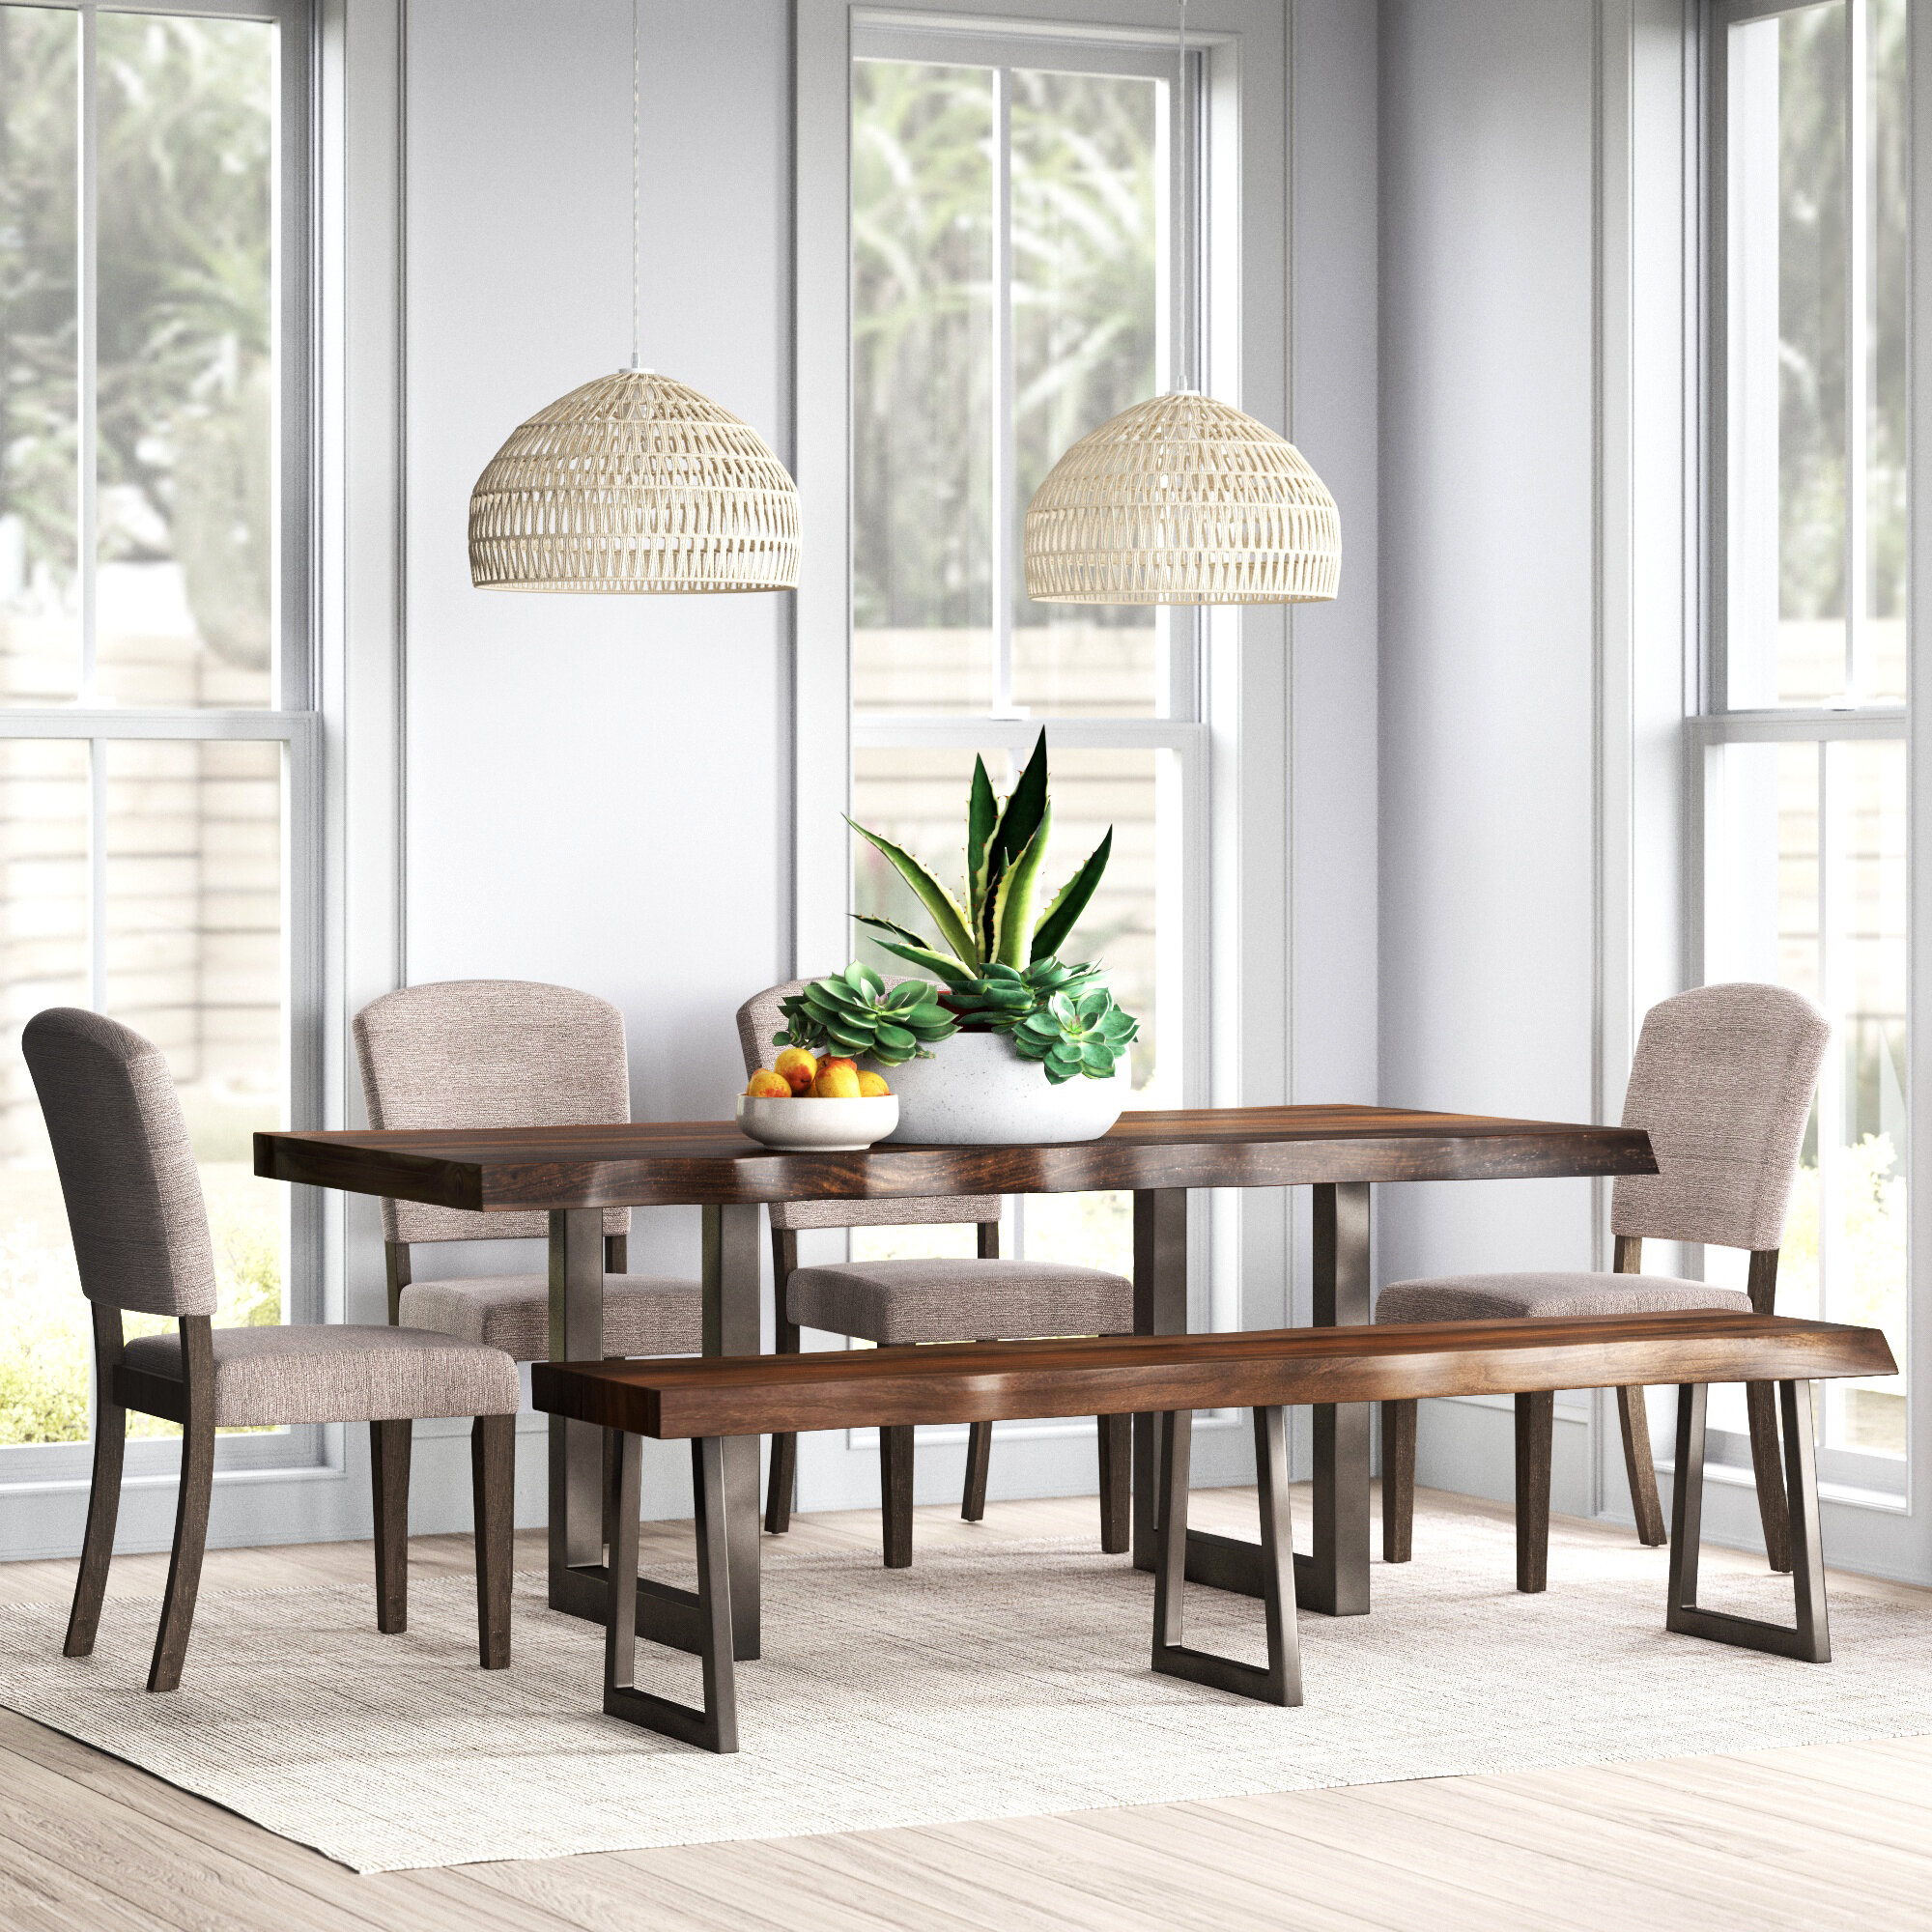 Bench Kitchen & Dining Room Sets You'll Love in 9   Wayfair